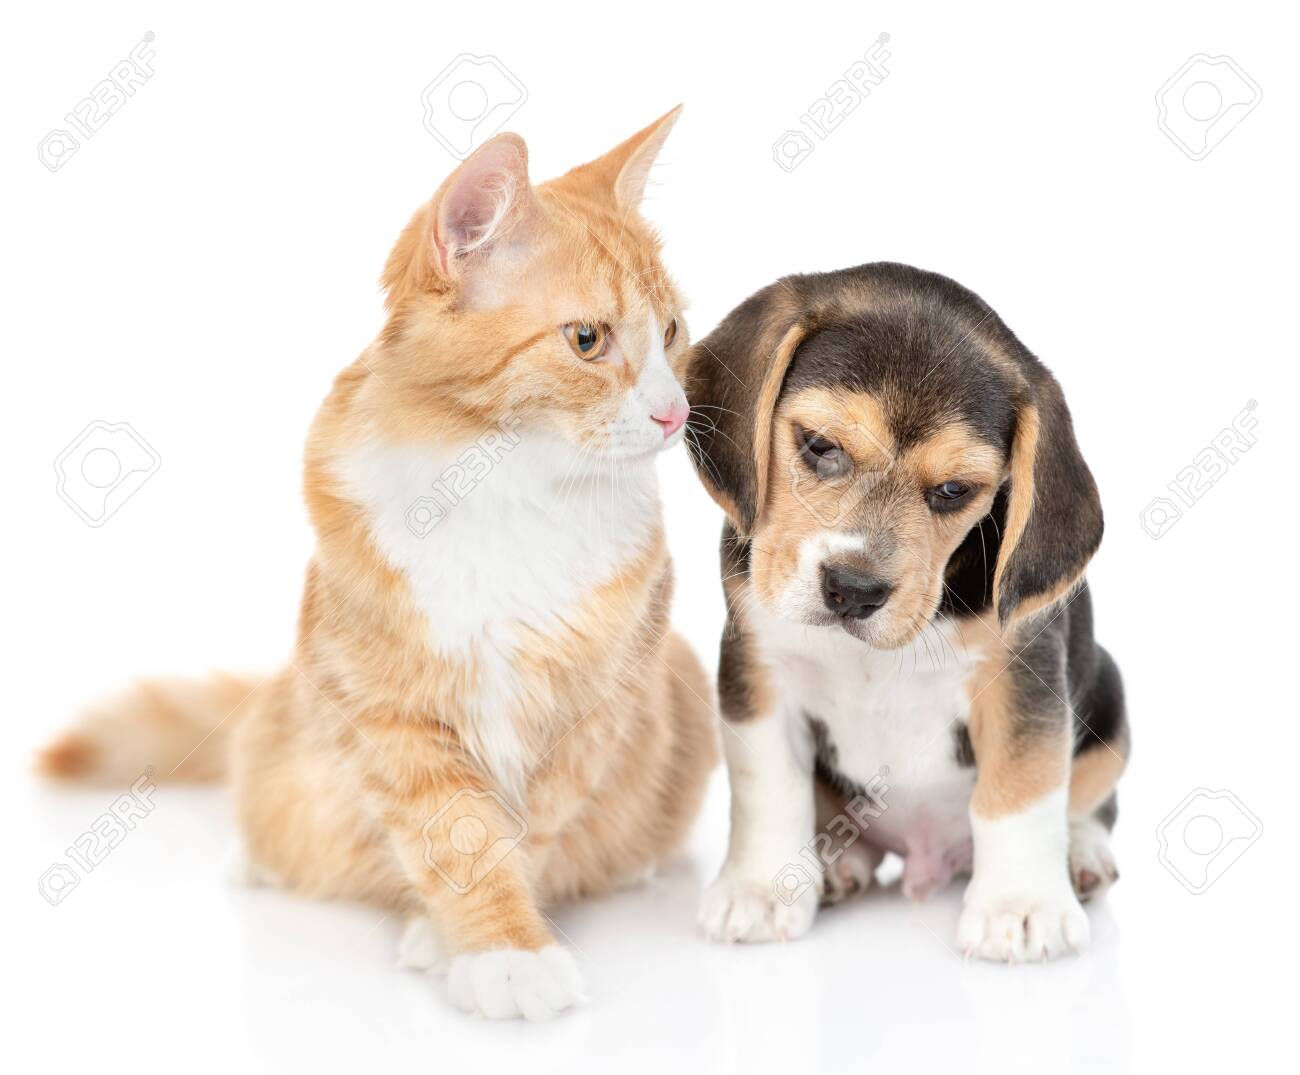 Beagle Puppy And Red Tabby Cat Together Isolated On White Background Stock Photo Picture And Royalty Free Image Image 132944979